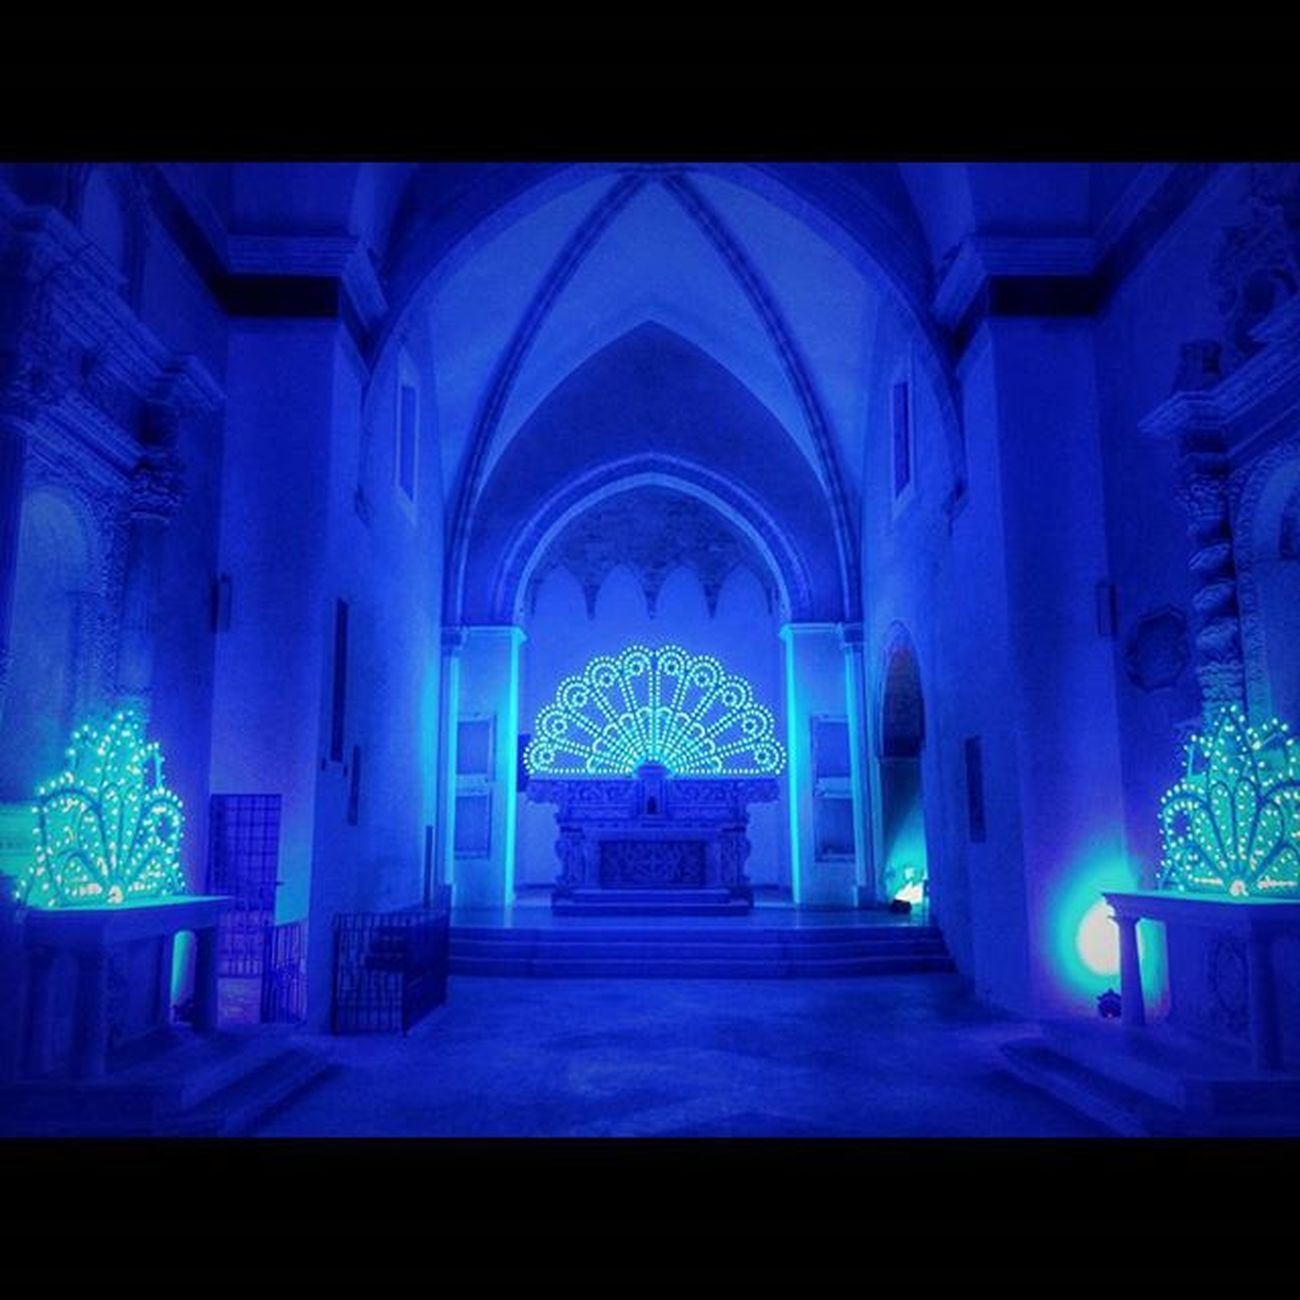 Salento Church Chiesa Convento Cinema Cinemadelreale Summer Estate Blu Lights Notte Night Colorful Instaday Picoftheday Specchia Ig_salento Ig_lecce Ig_puglia Blue Wonderful Beautiful Instagood Italy Life